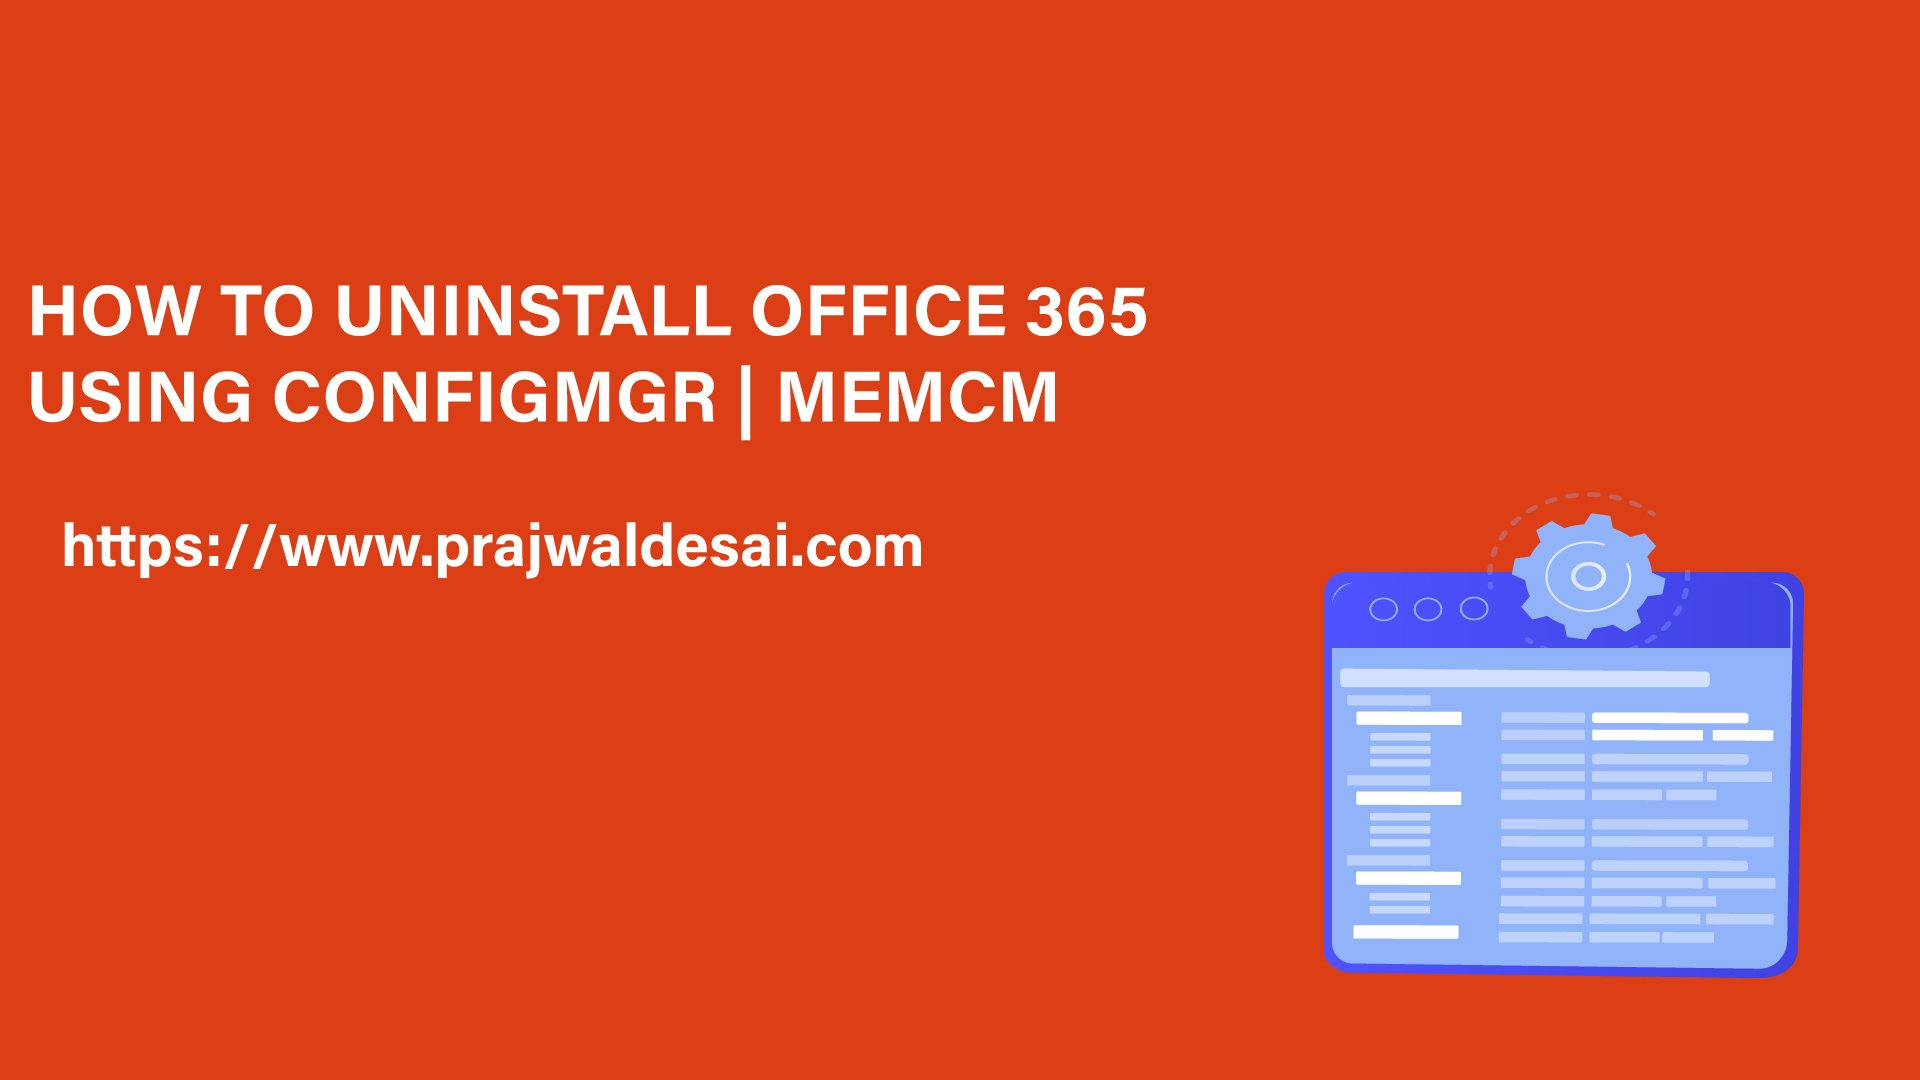 How to Uninstall Office 365 Using ConfigMgr